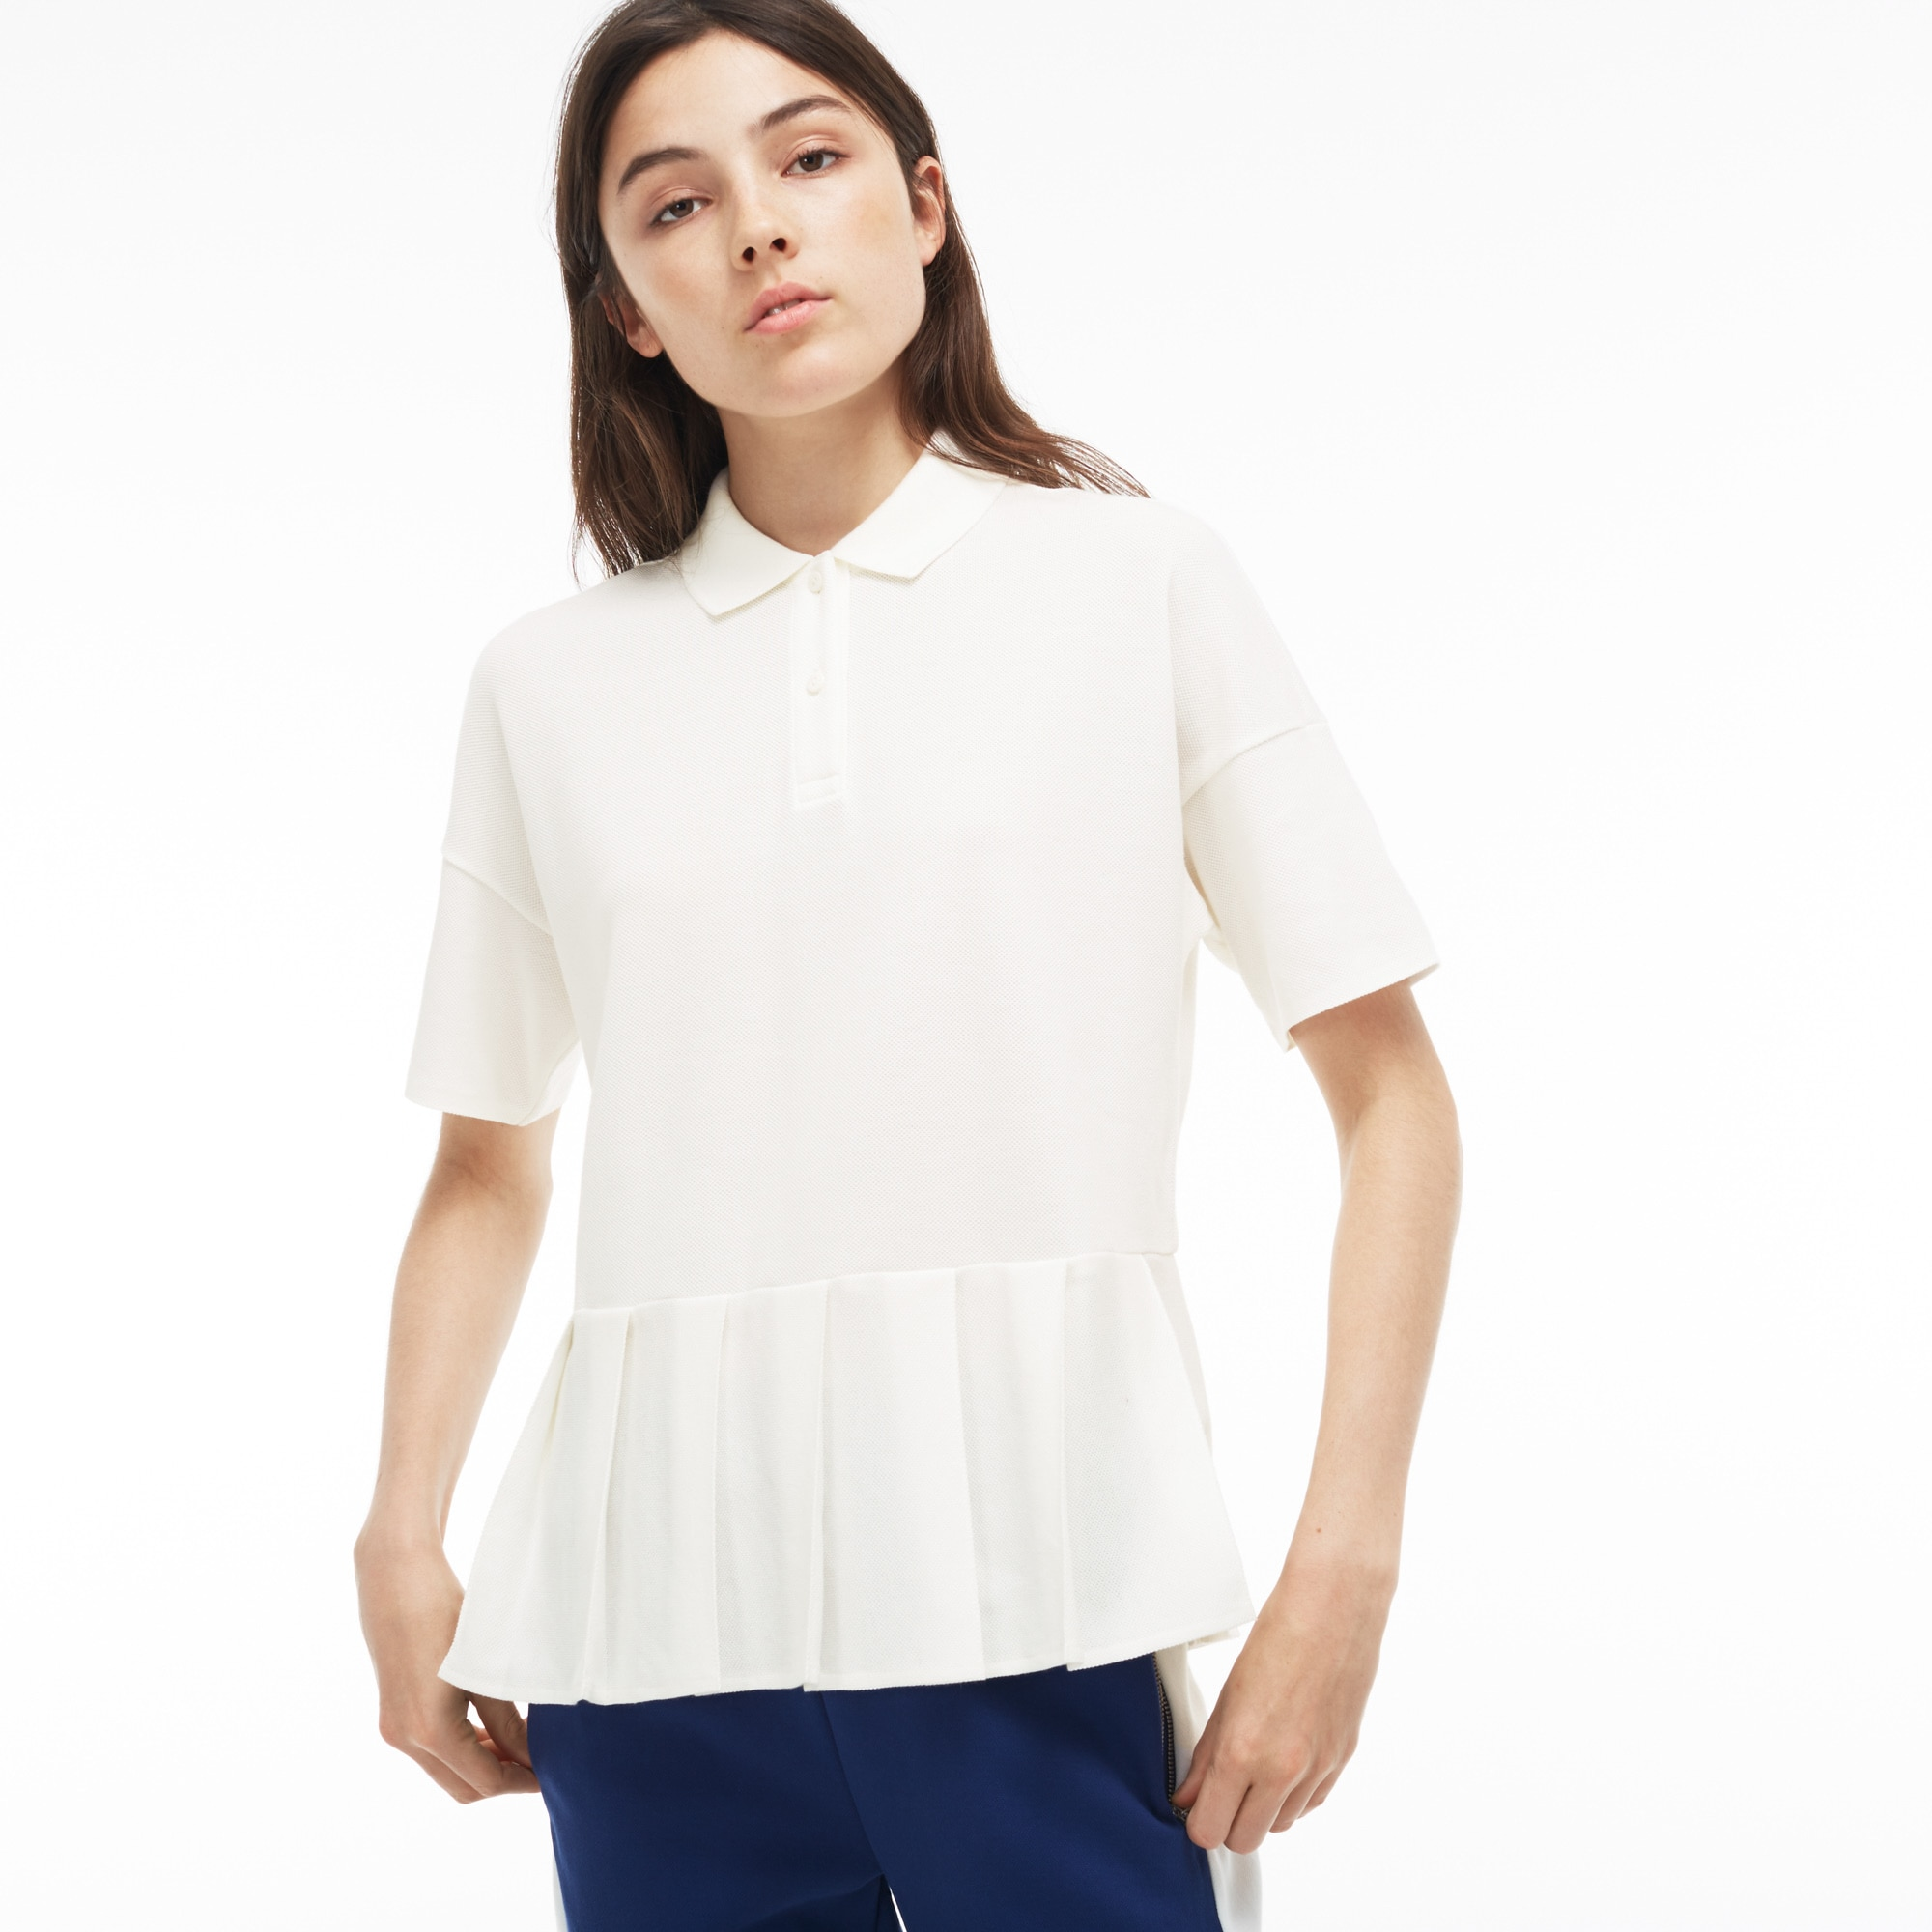 Women'S Pleated Thick Cotton Piqué Polo in White from Lacoste